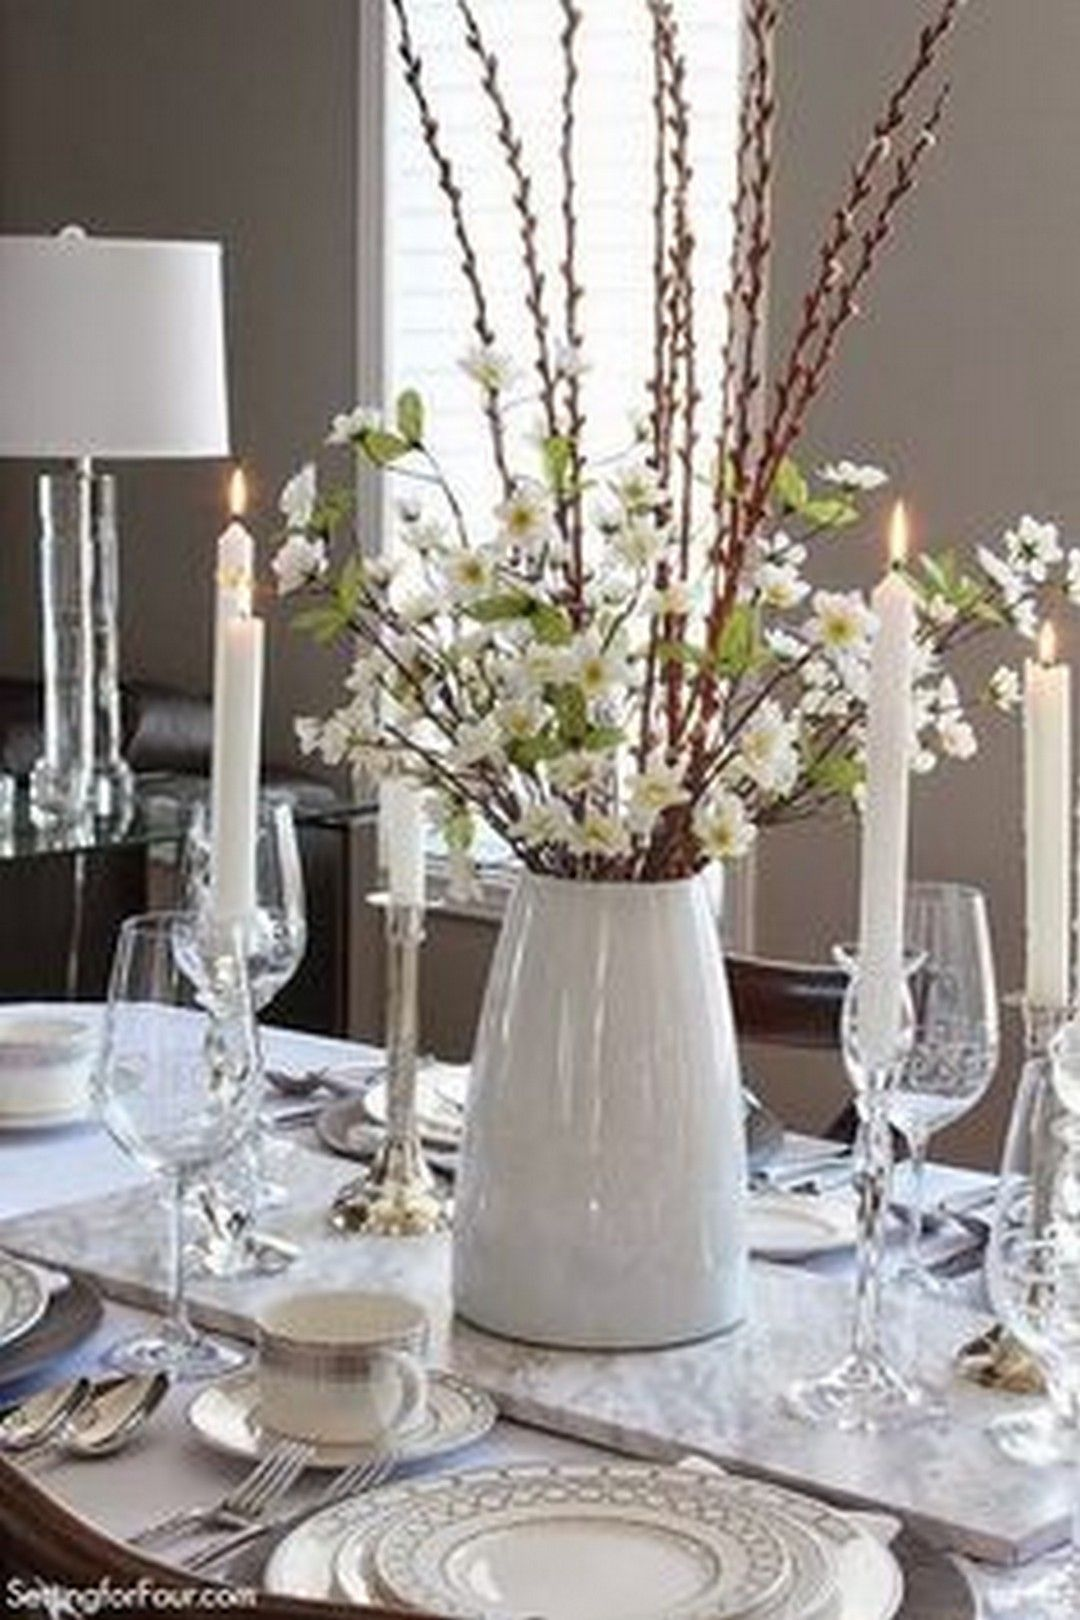 Dining Table Centerpiece Ideas Formal And Unique Dining Room Centerpiece Spring Table Decor Dining Table Centerpiece Dining Room Centerpiece